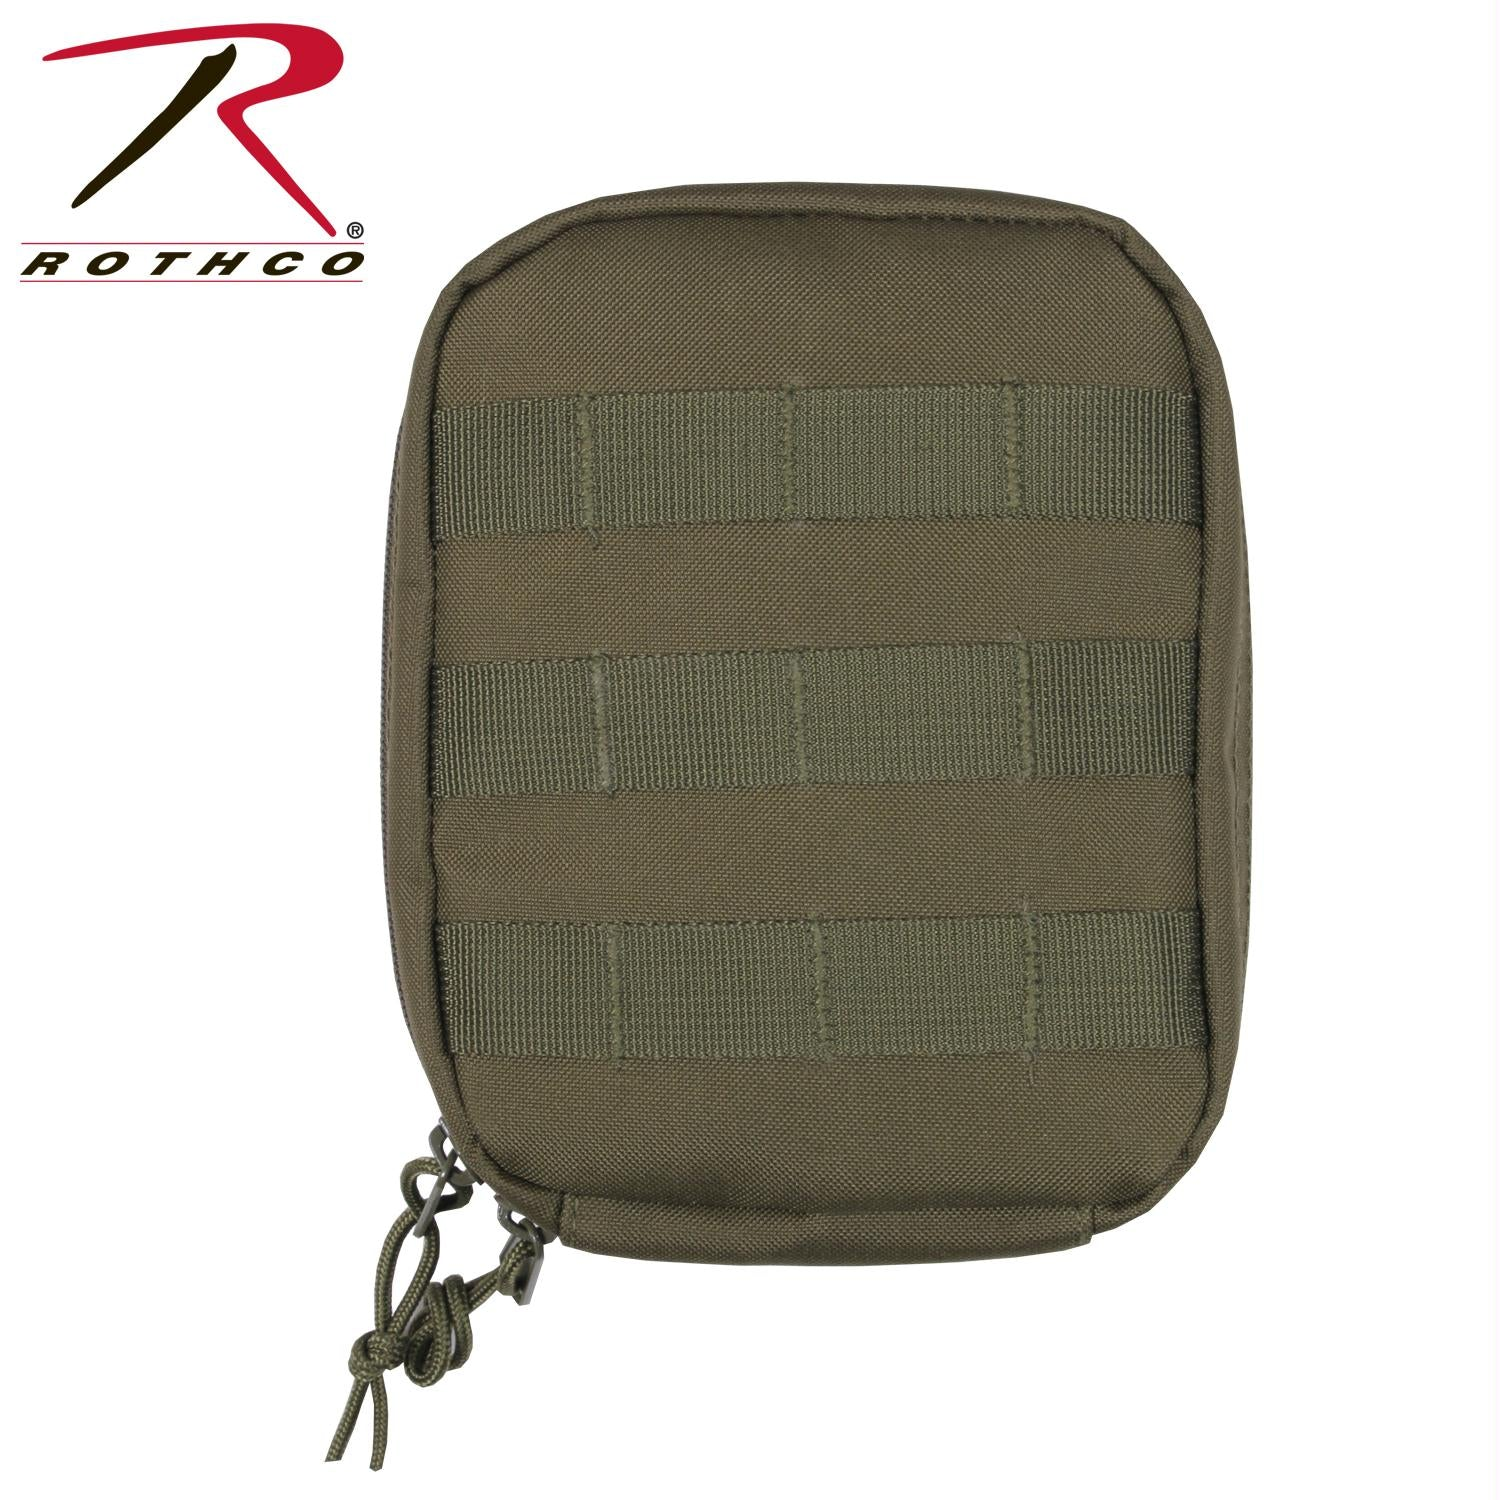 Rothco MOLLE Tactical Trauma & First Aid Kit Pouch - Olive Drab